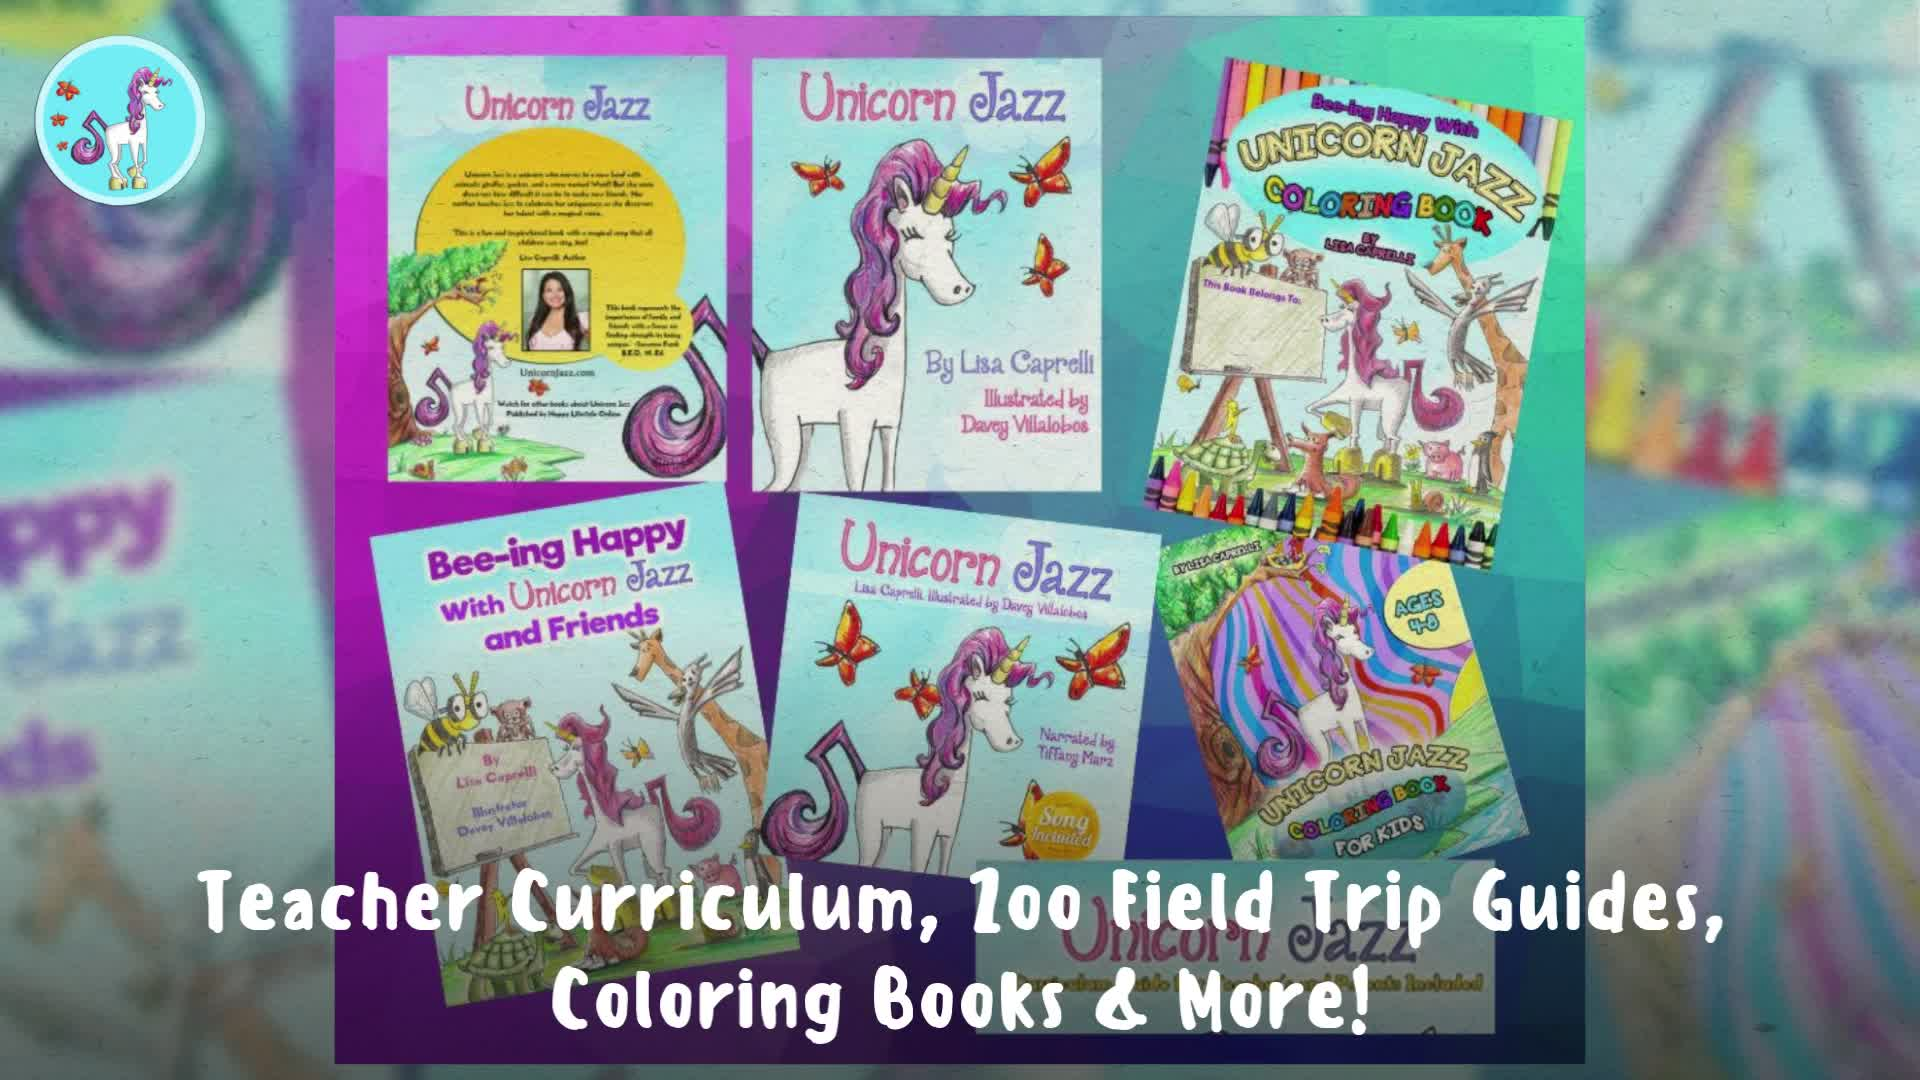 Unicorn Jazz Children's book includes Social Emotional Learning